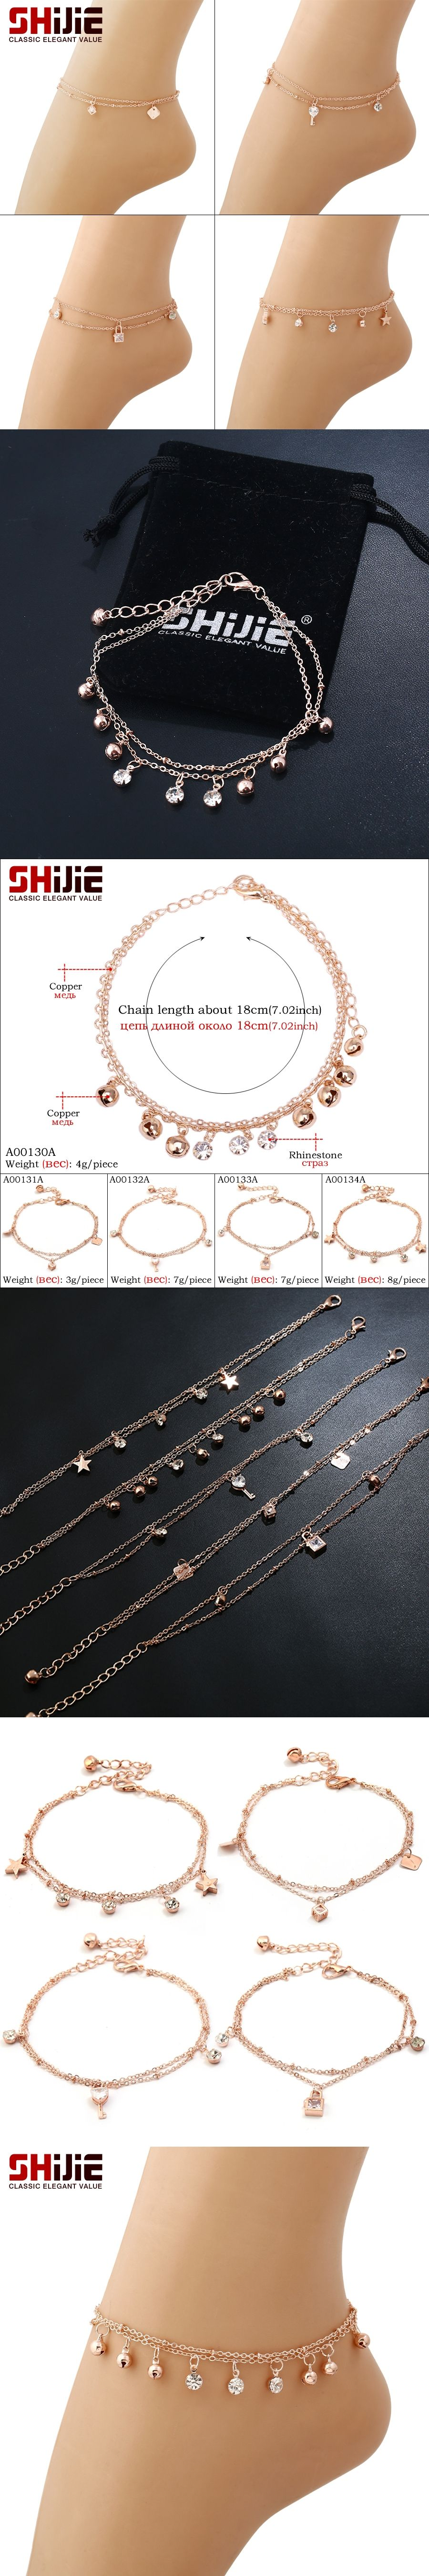 anklet anklets design foot color feminina glass barefoot sandal for multi simple pulseira com chain women vintage dhgate woman pearl from product